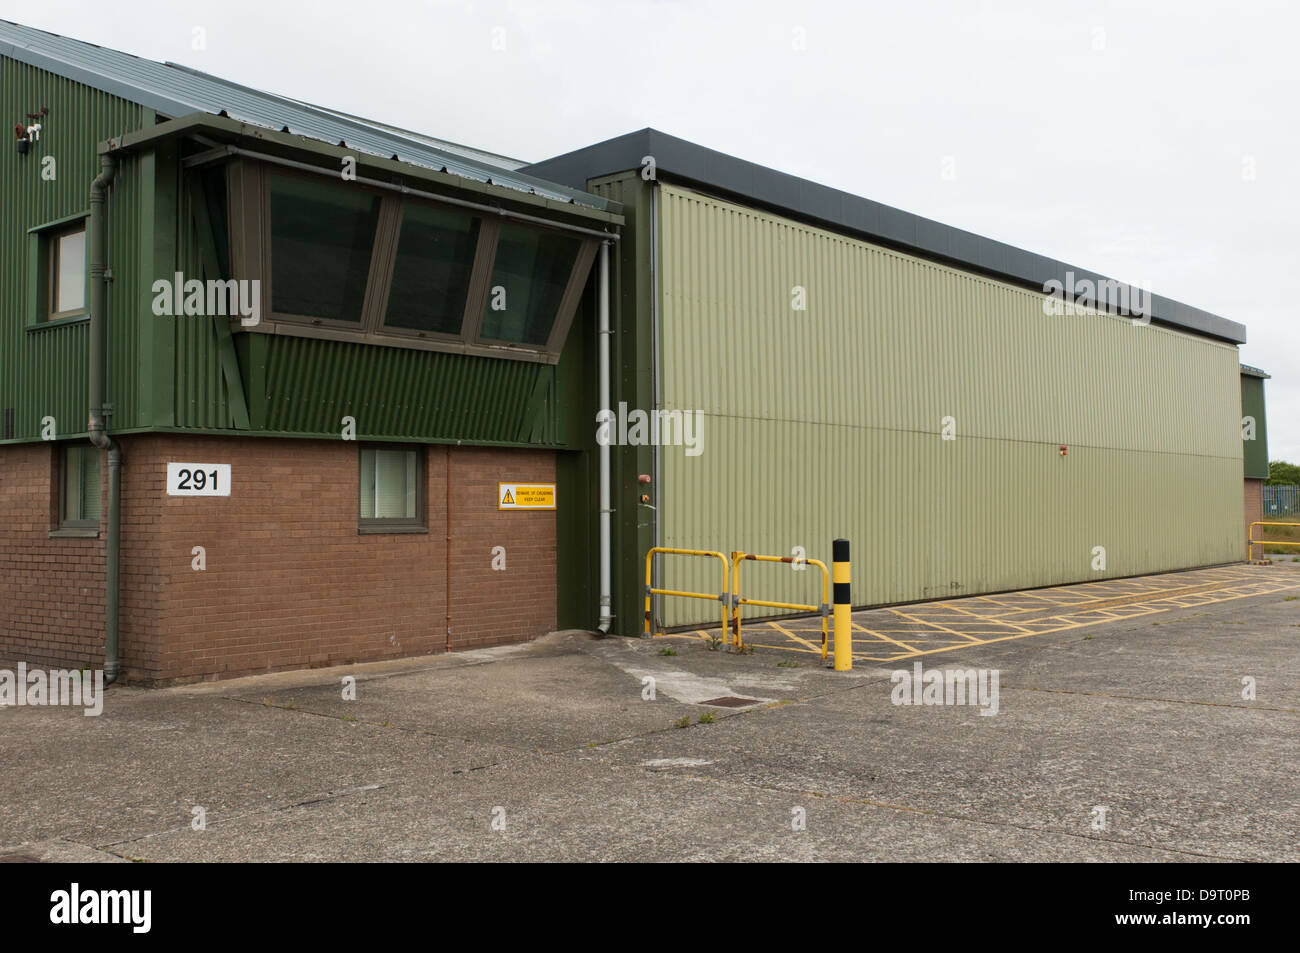 Llanbedr airfield facilities include the old fire section, which was converted to house drone aircraft - Stock Image